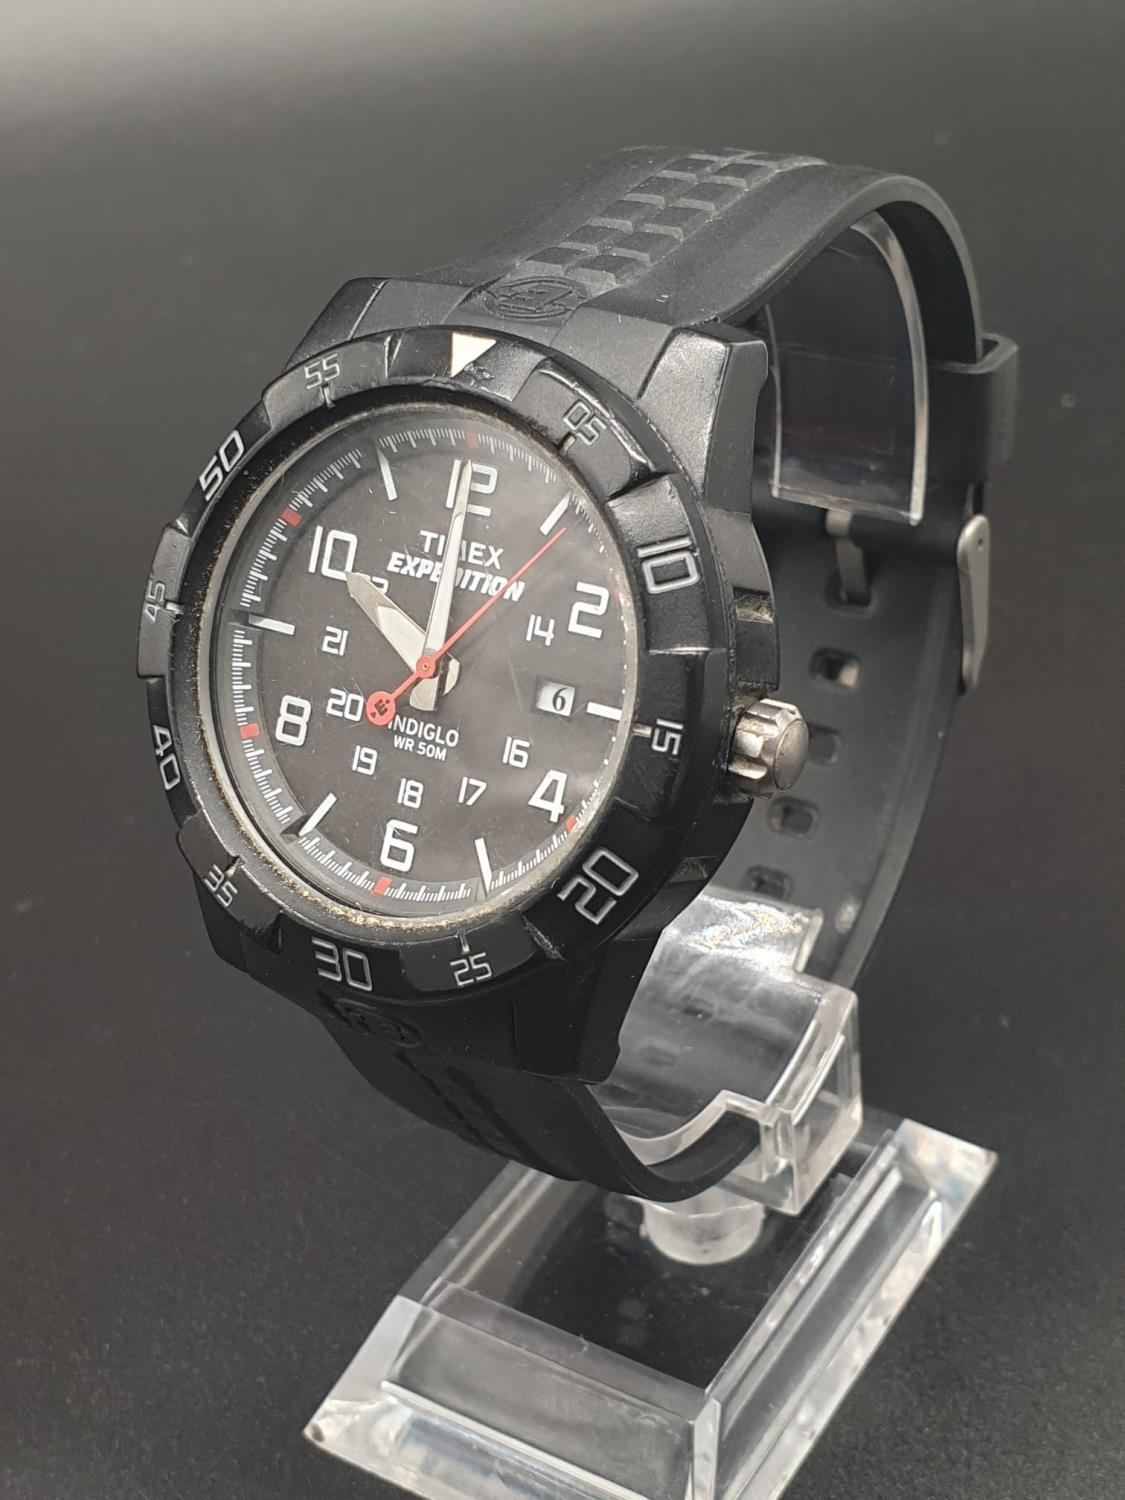 Timex Expedition Watch. Black rubber strap. Black dial. As found. - Image 2 of 9